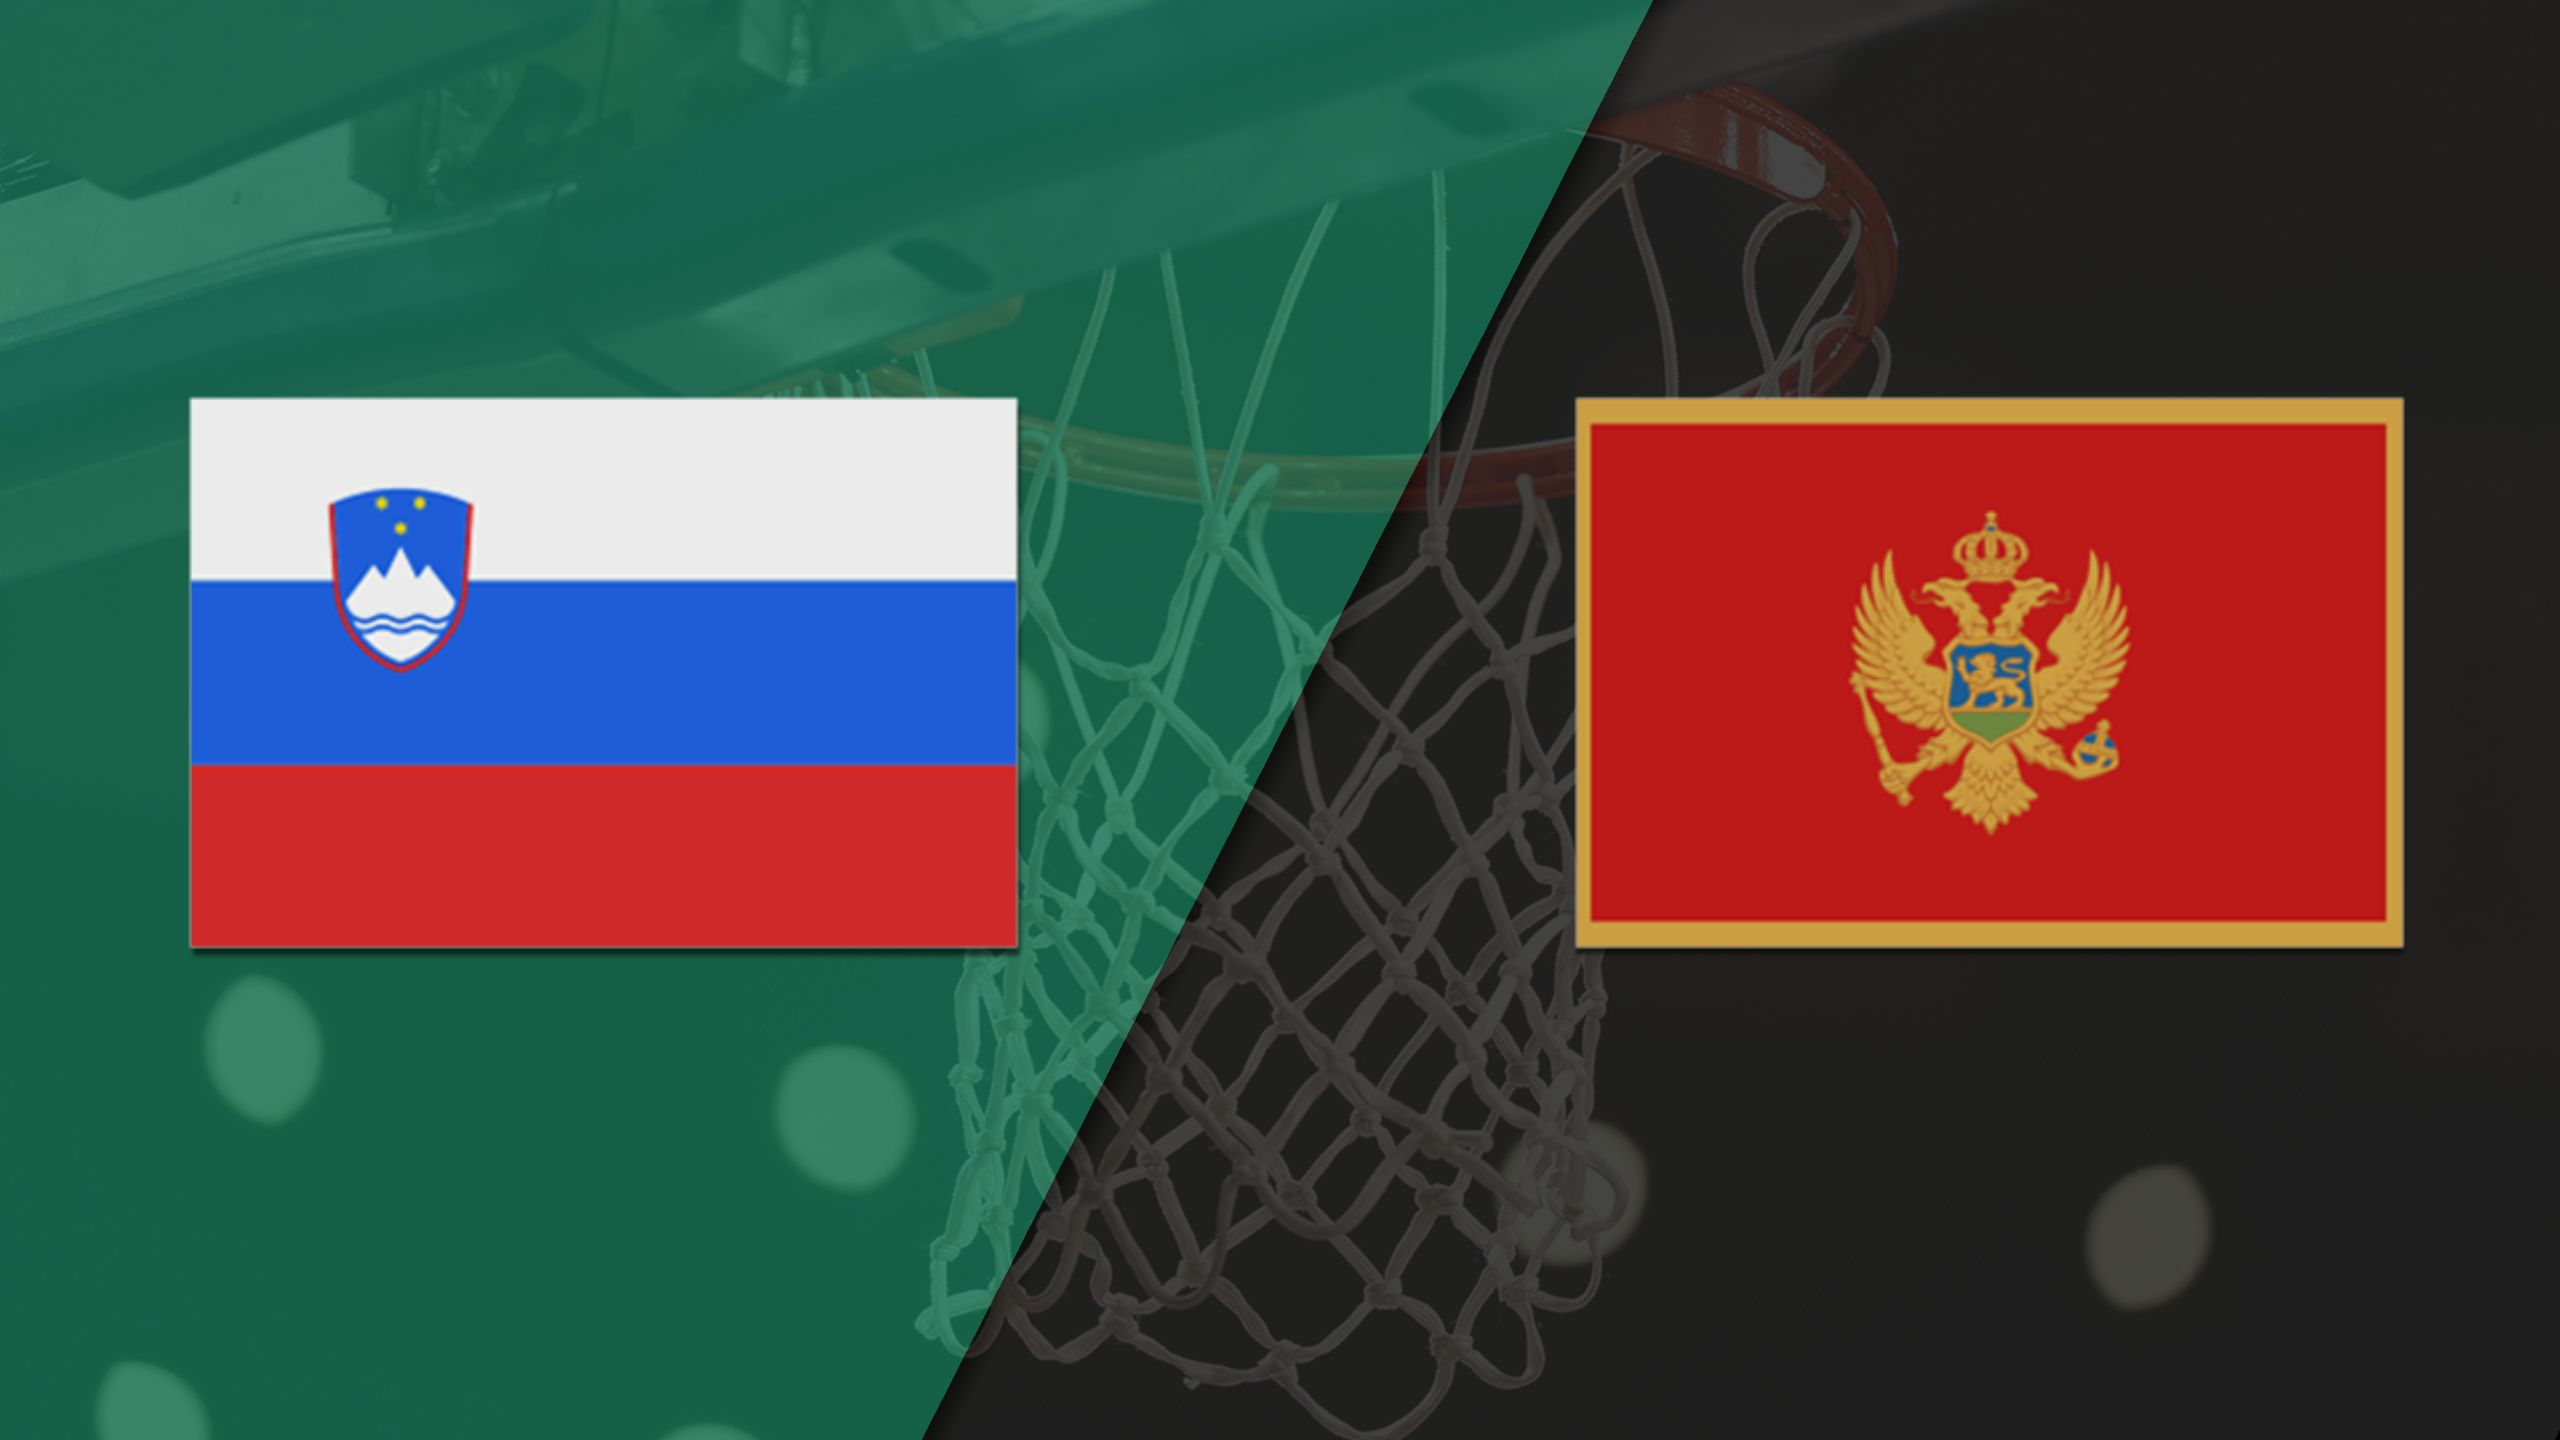 Slovenia vs. Montenegro (FIBA World Cup 2019 Qualifier)